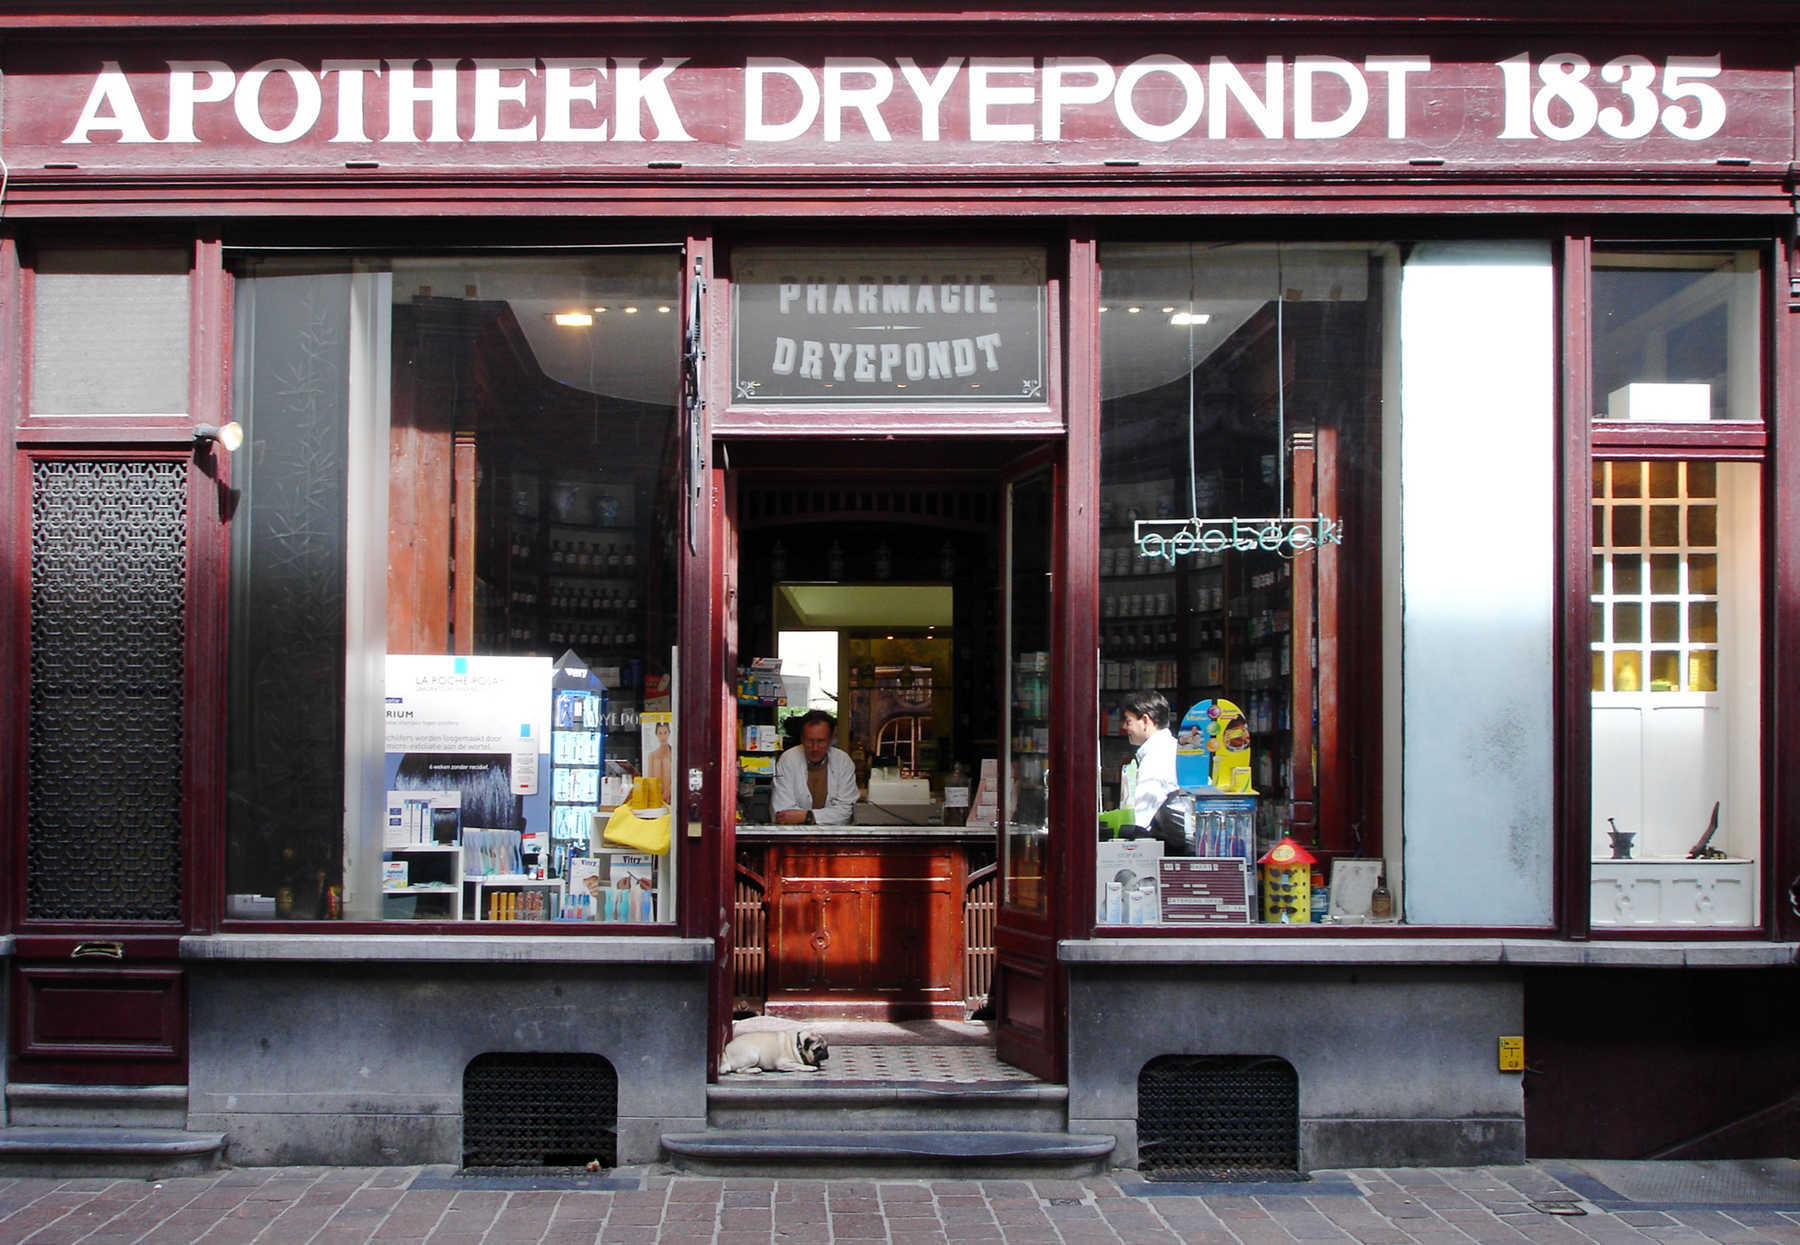 Pharmacy, Netherlands